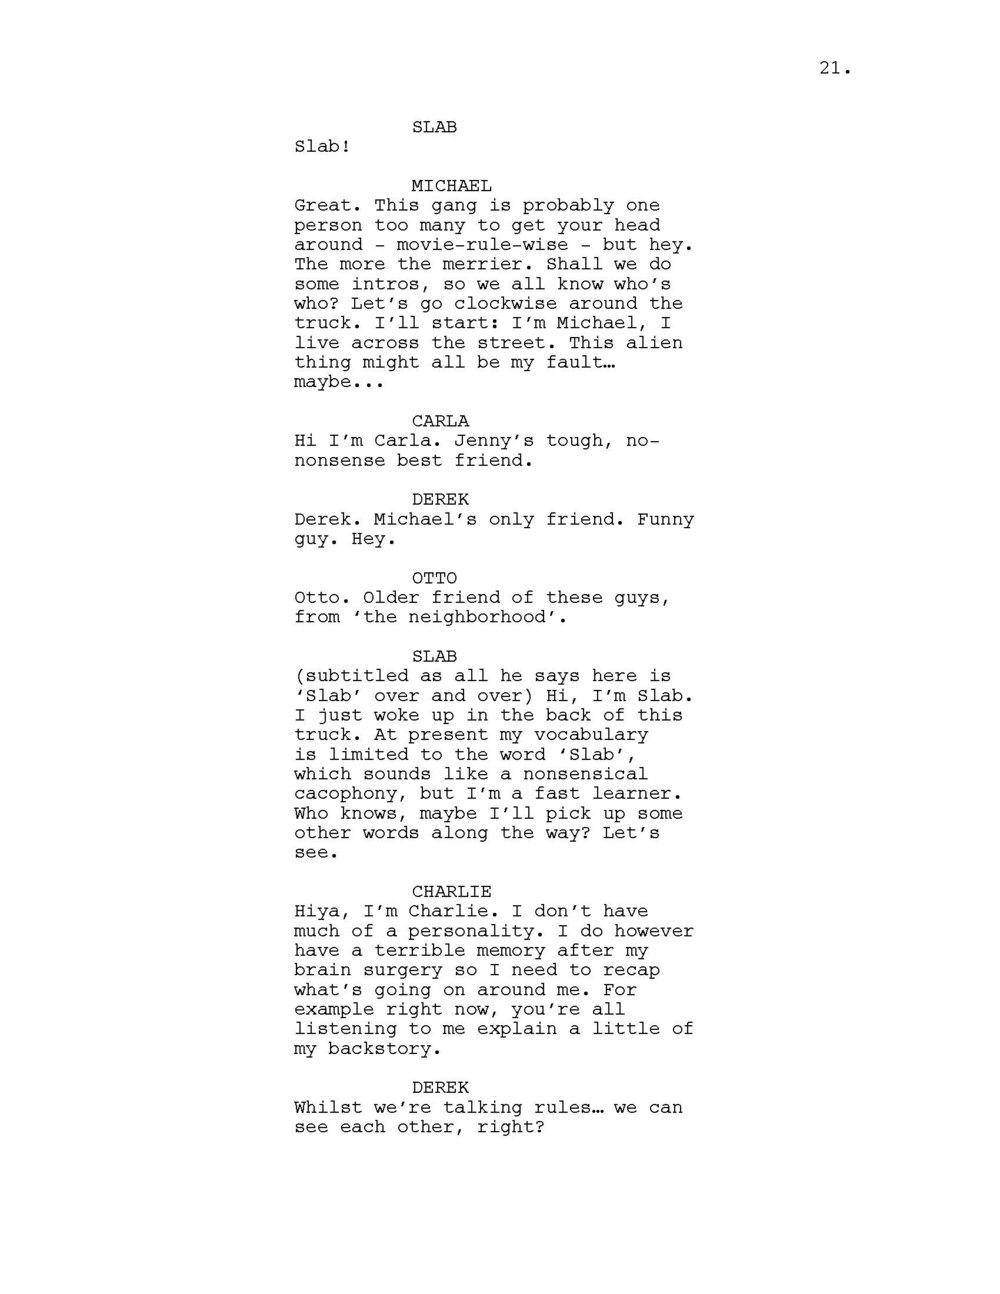 INVISIBLE WORLD SCRIPT_Page_022.jpg